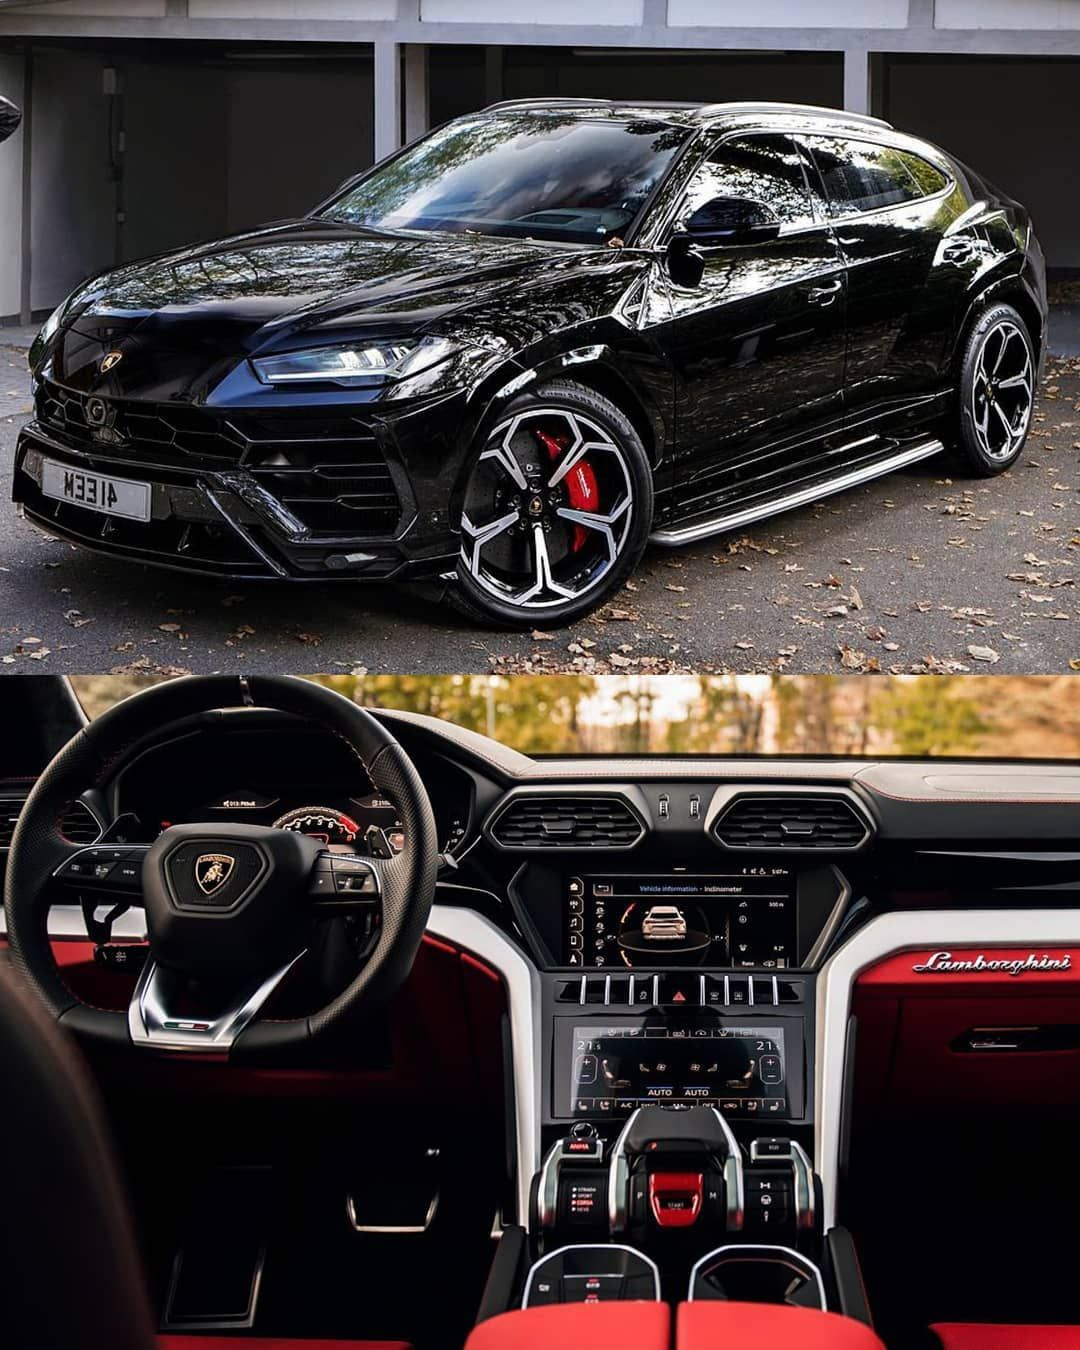 Lamborghini Urus 2019 🔥🔥 Black Edition \u0026 red n black